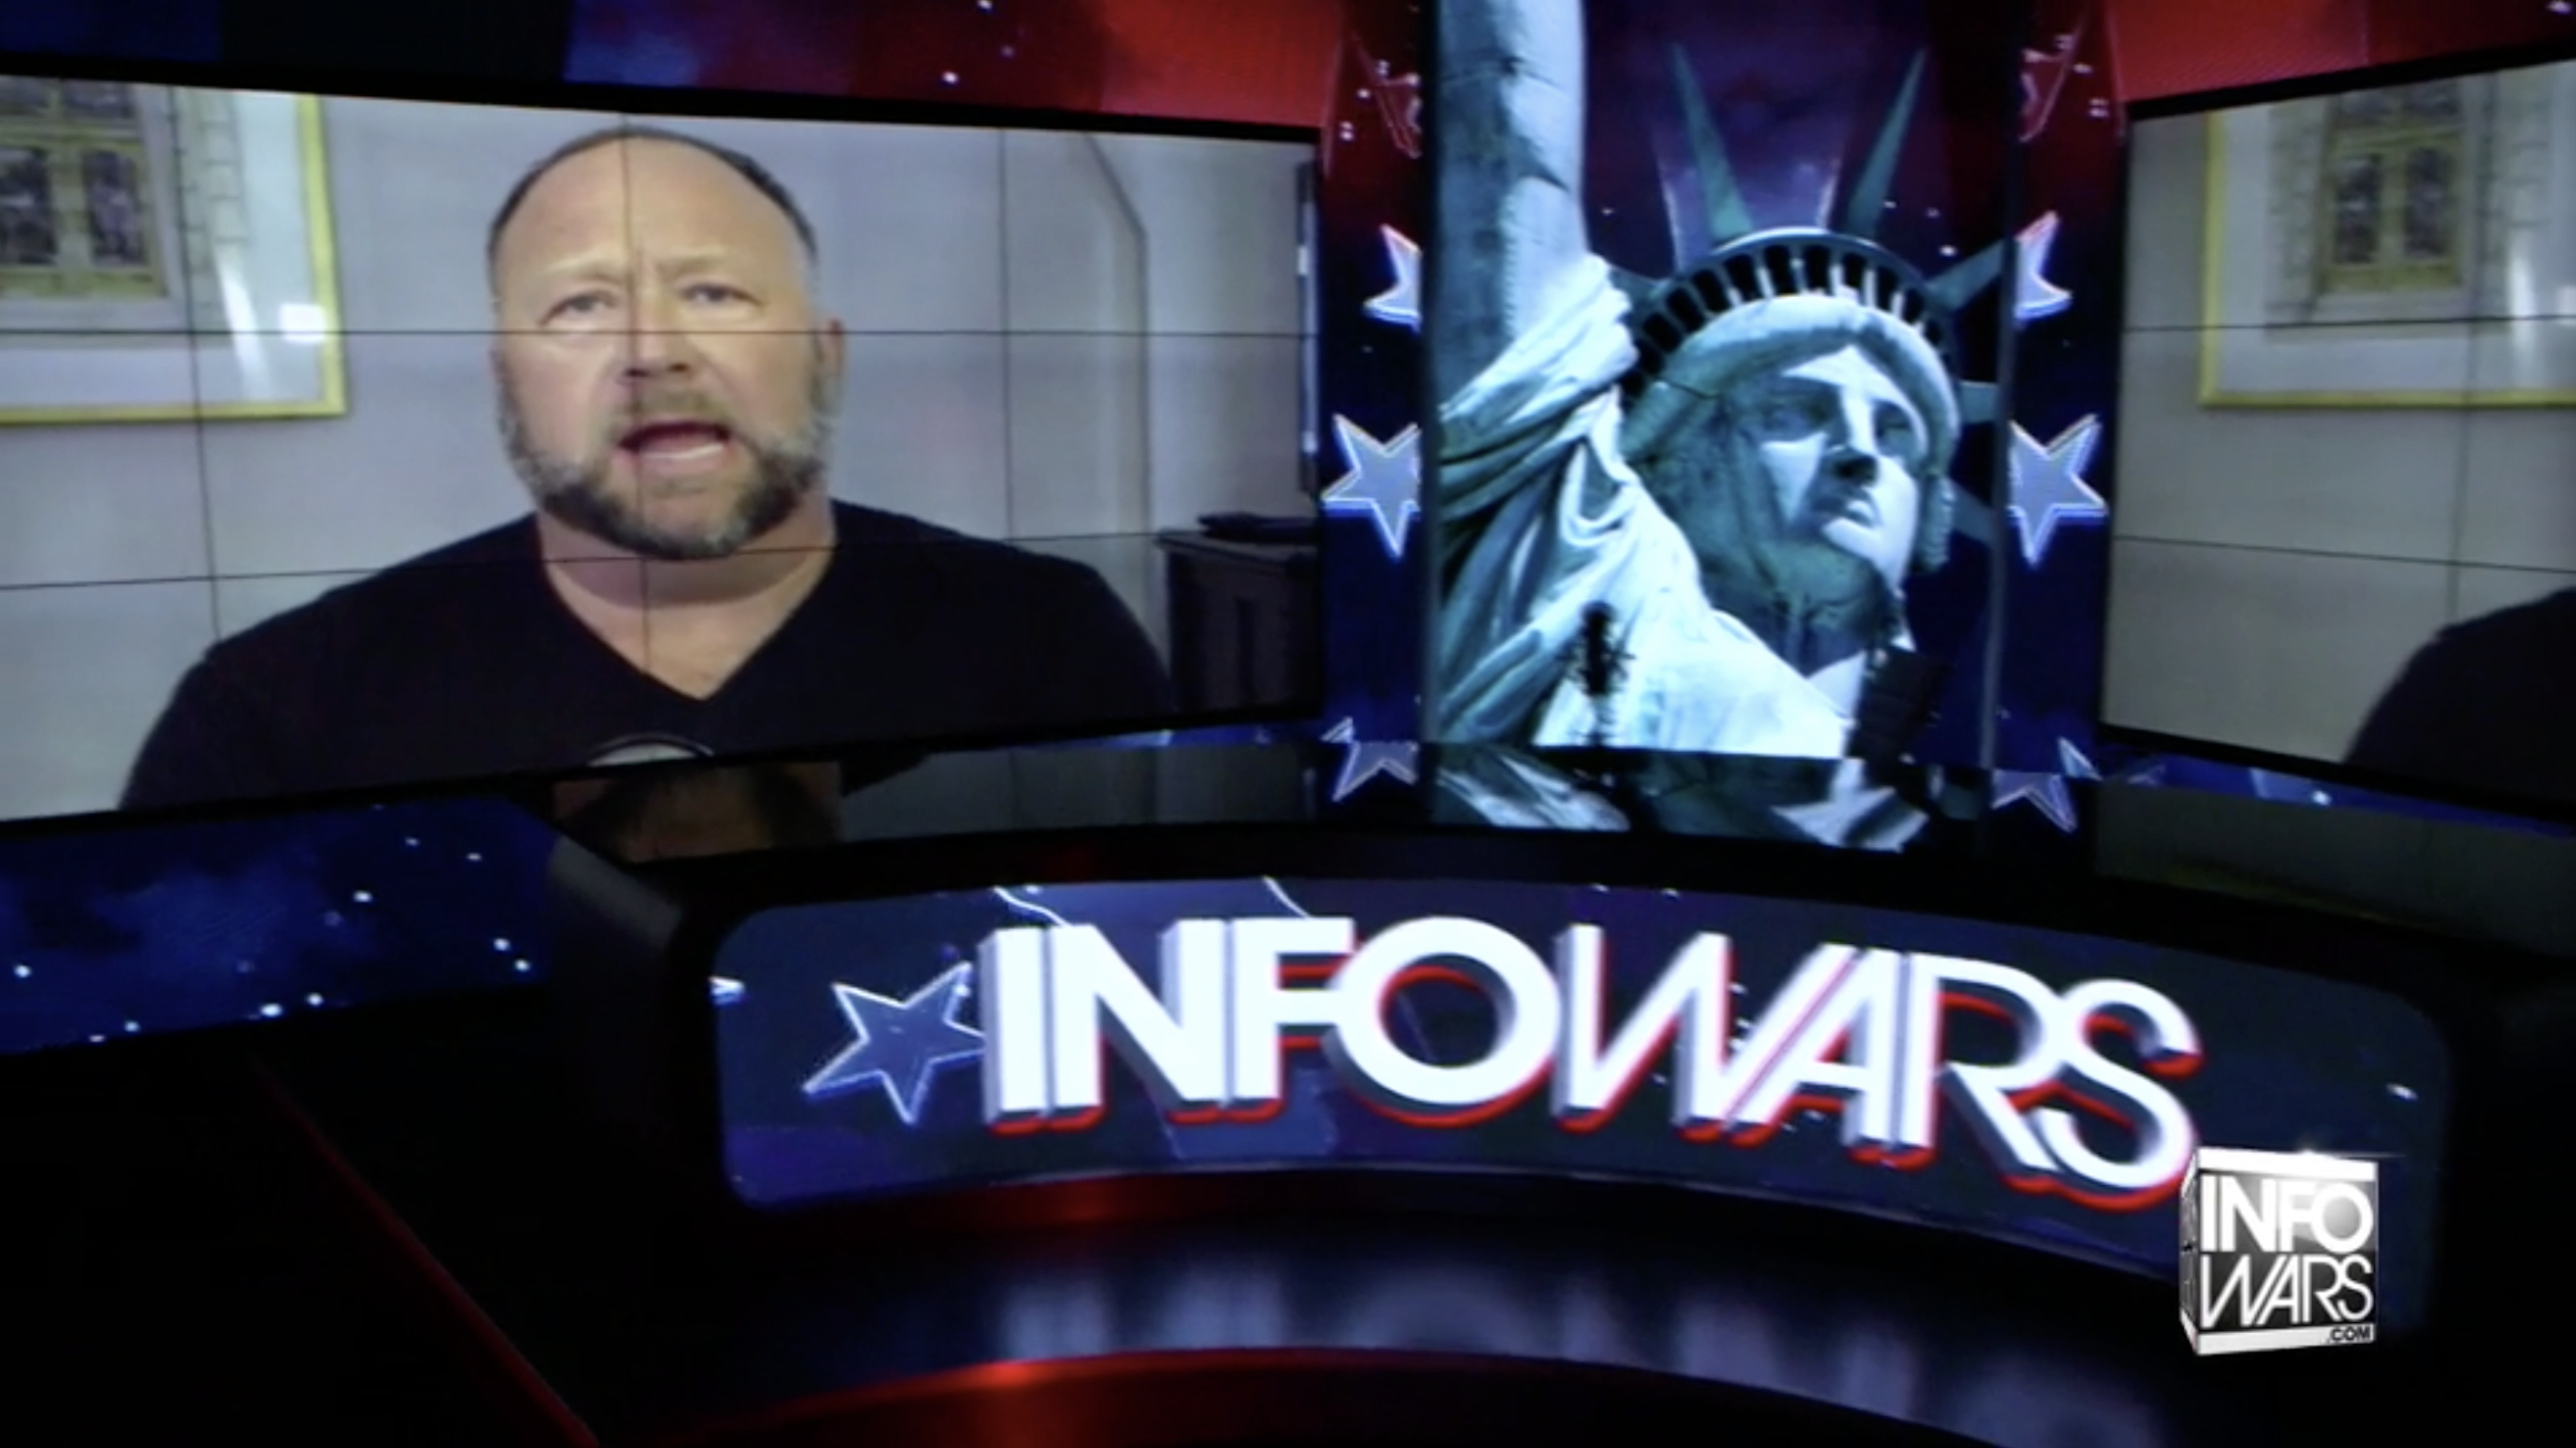 Alex Jones In Infowars Studio Washington DC EXZM Zack Mount November 13th 2020